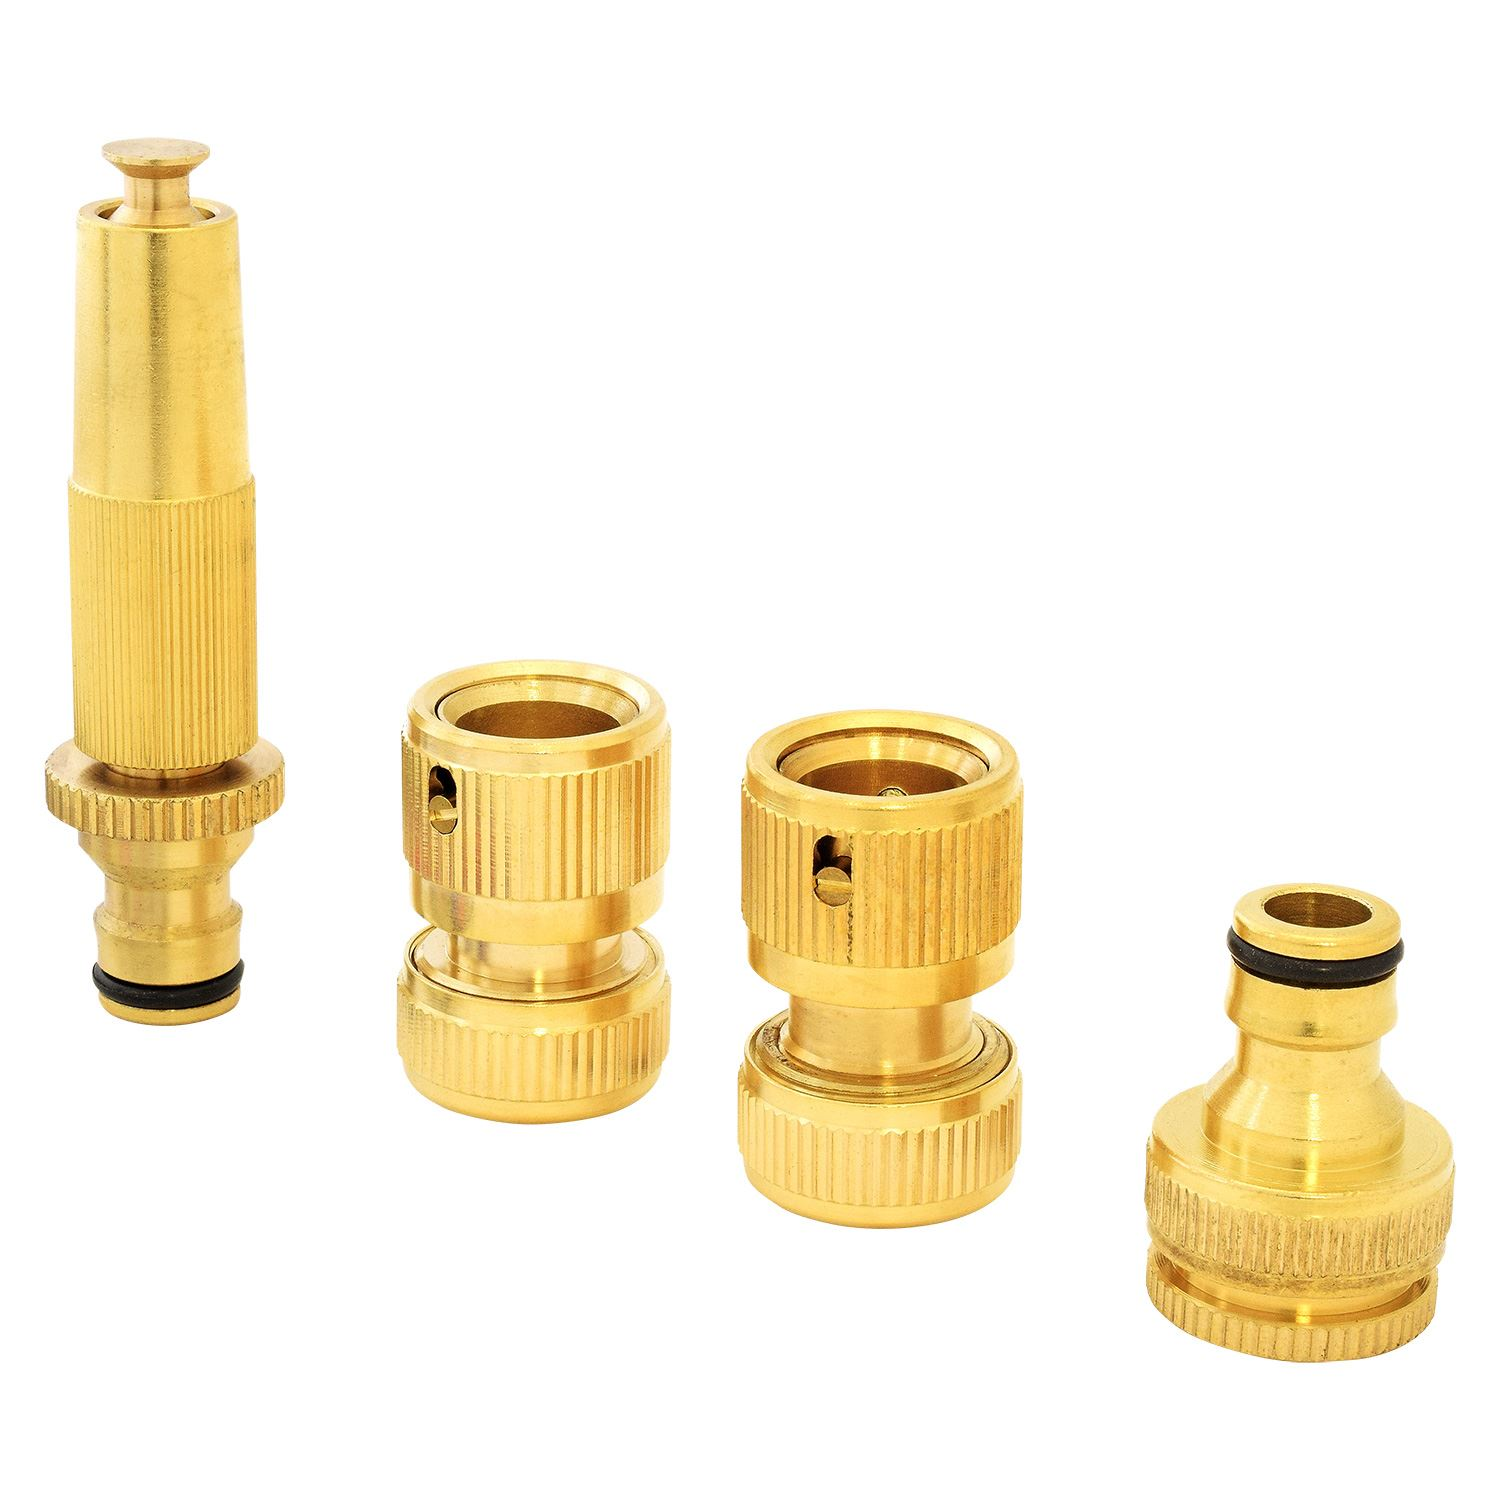 ... Picture 2 of 2  sc 1 st  eBay & Parkland 4pc Brass Hose Pipe Fitting Set Garden Tap Hosepipe Quick ...